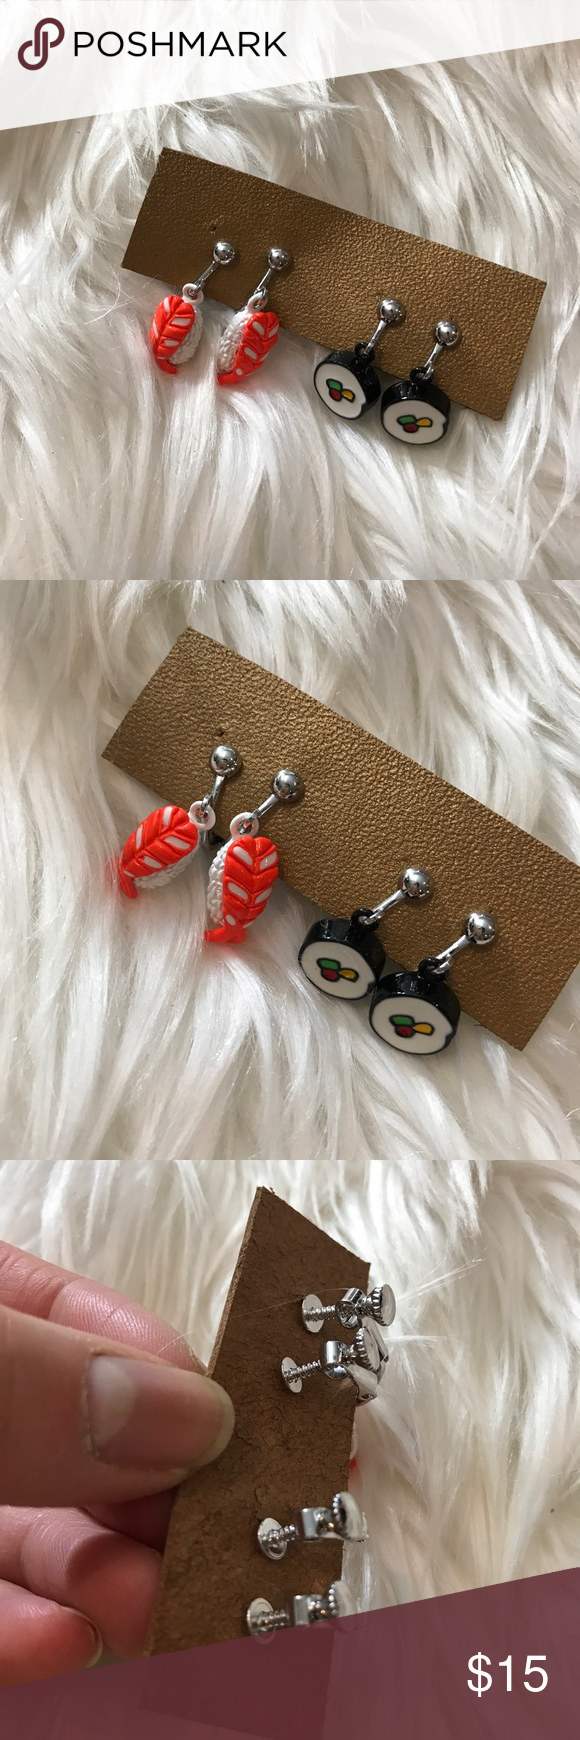 ✨FINAL✨ Set of 2 Sushi Clip On Earrings NEW / sushi earrings / clip on / tagged asos for exposure ASOS Jewelry Earrings